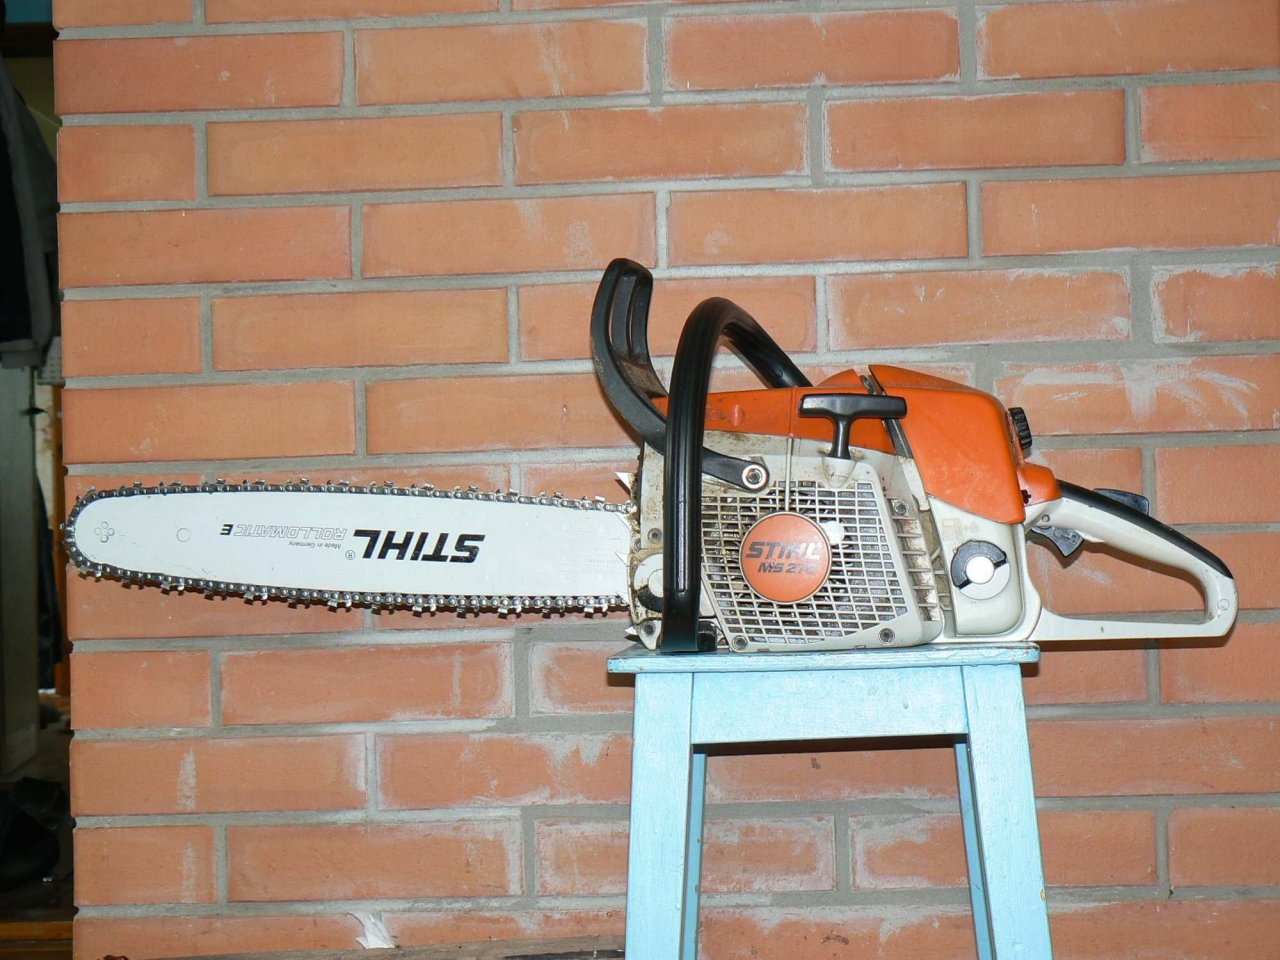 I Have A Stihl Saw And Oil Is Not Getting To The Chain Bar | DIY Forums